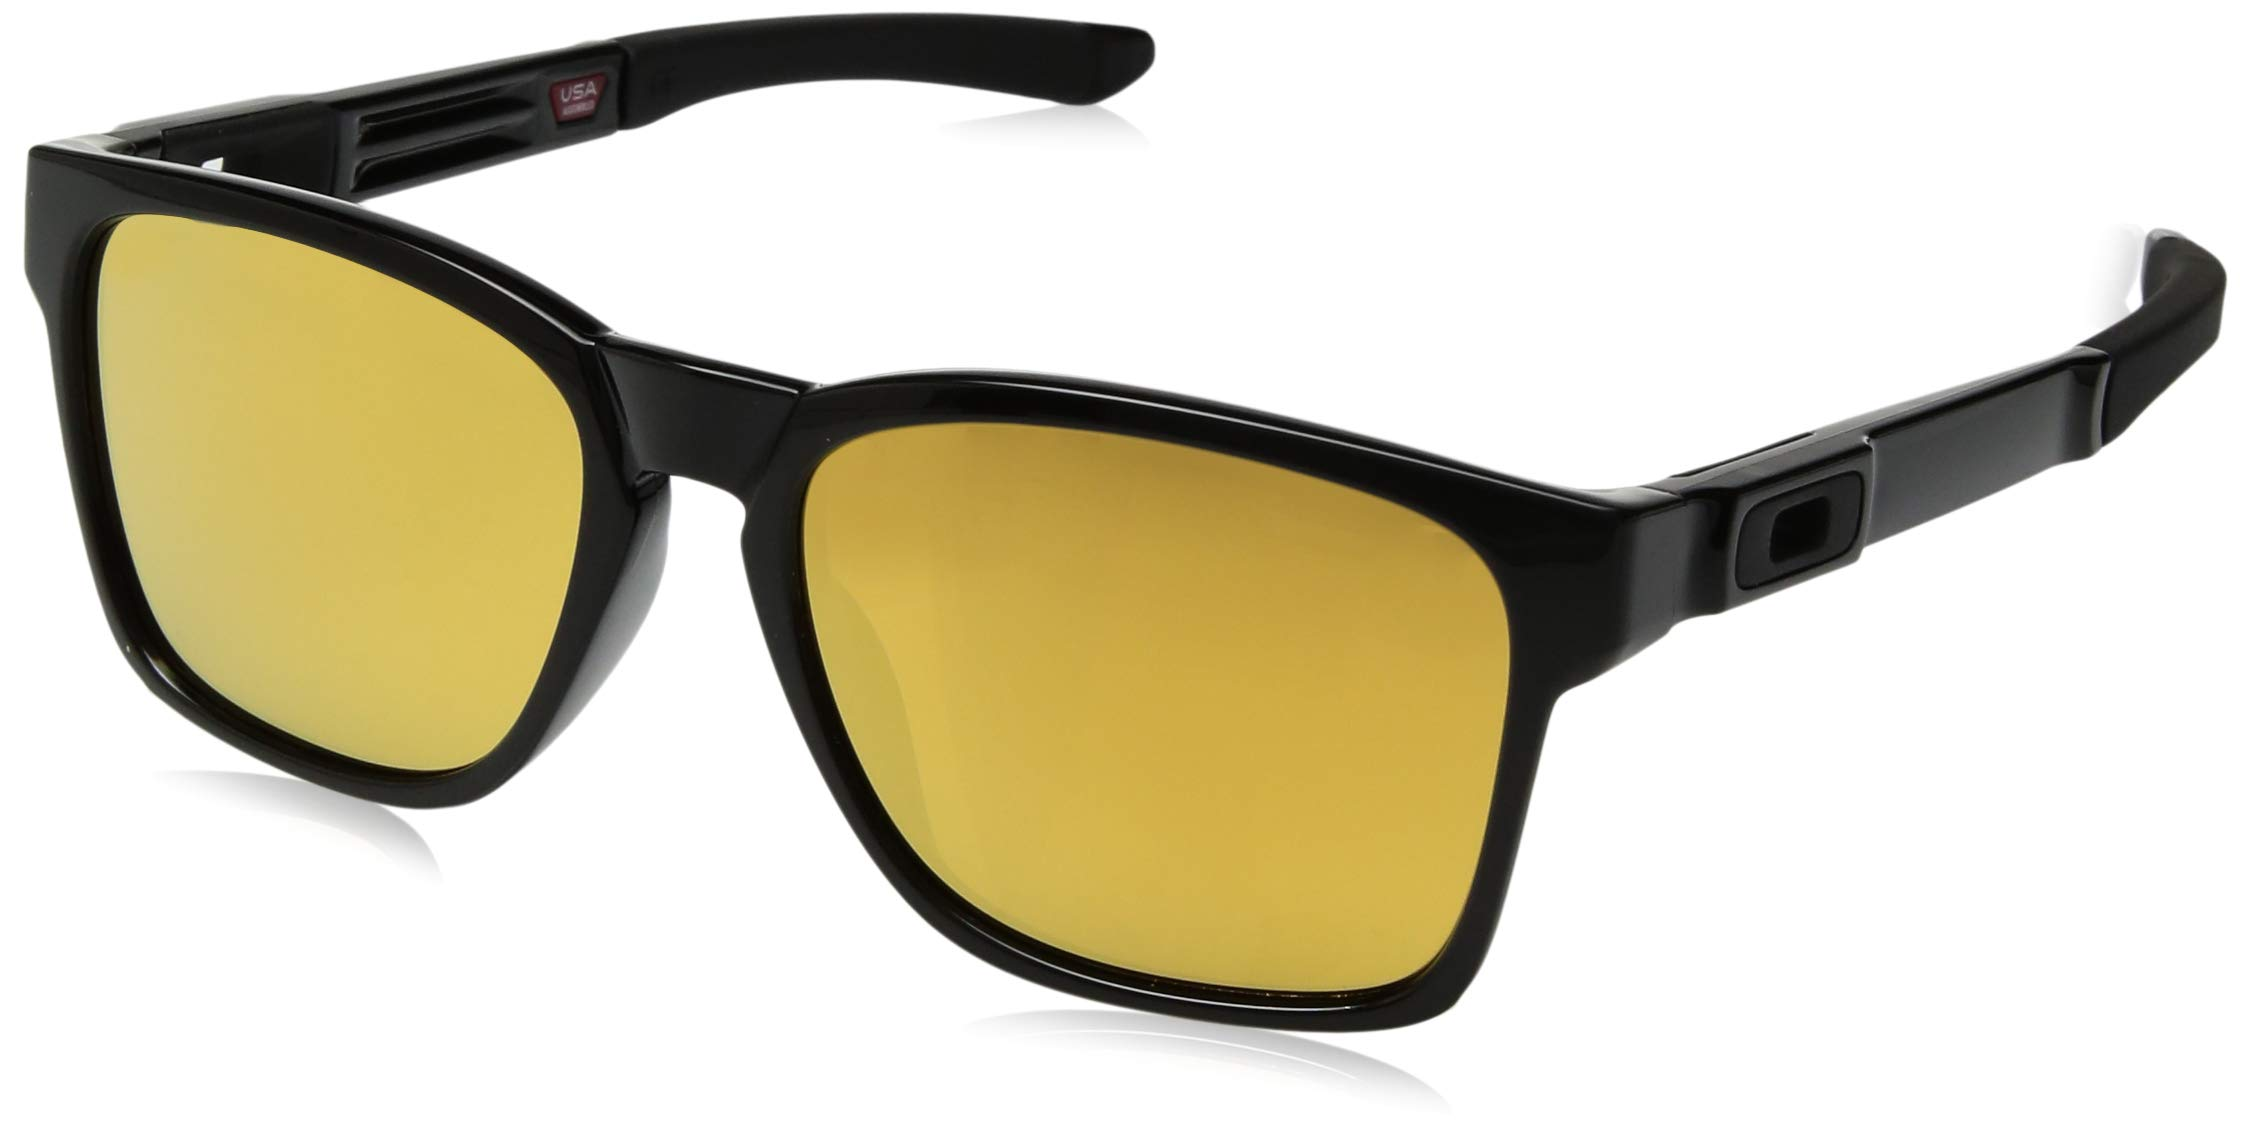 Oakley Men's OO9272 Catalyst Rectangular Sunglasses, Polished Black/24K, 56 mm by Oakley